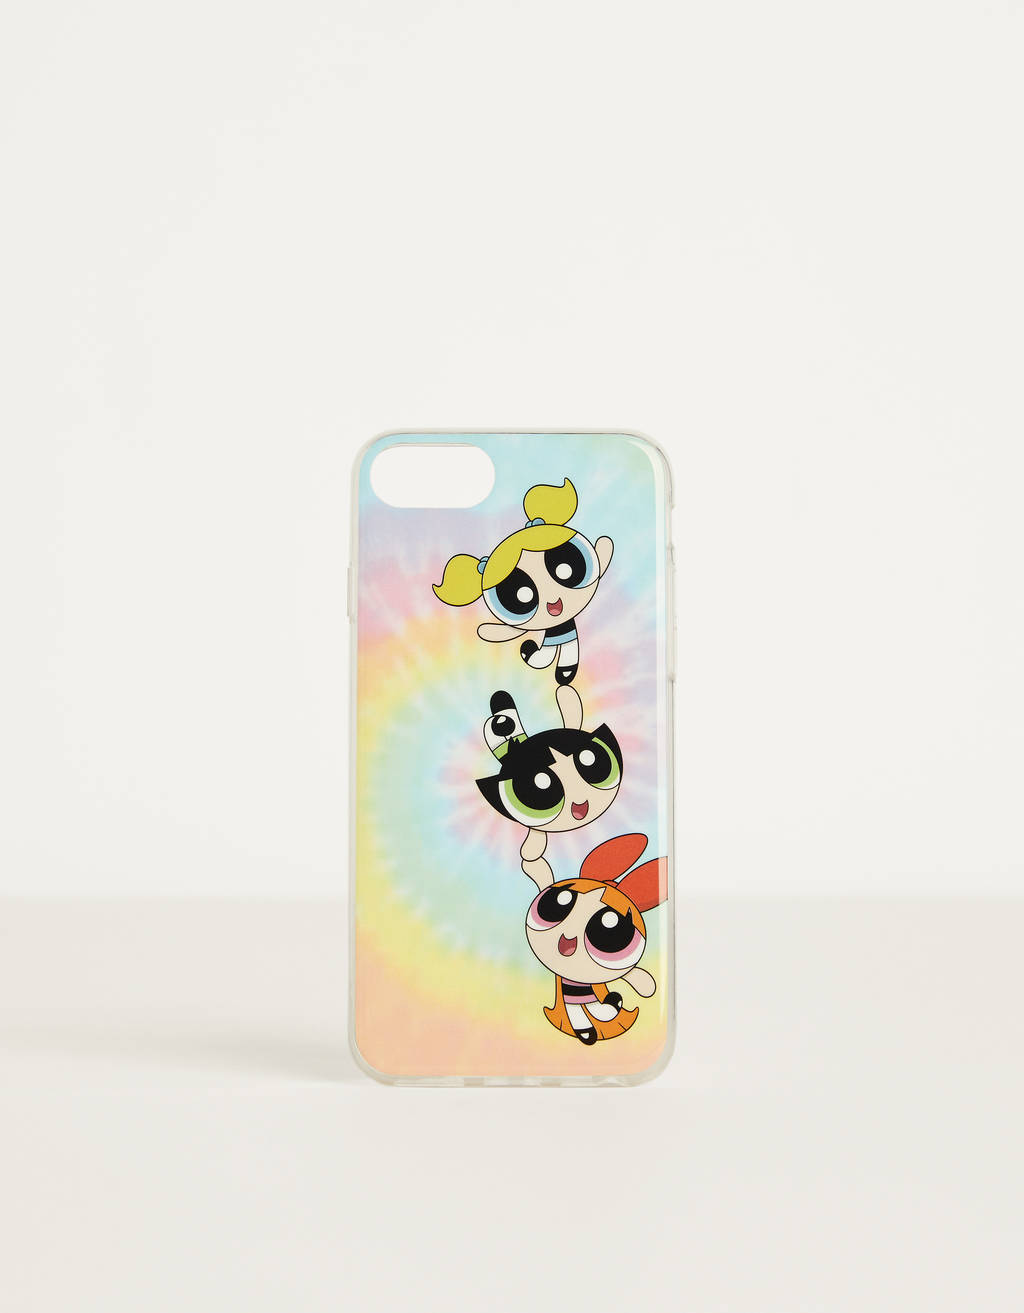 Coque Les Super Nanas x Bershka iPhone 6 / 6S / 7 / 8